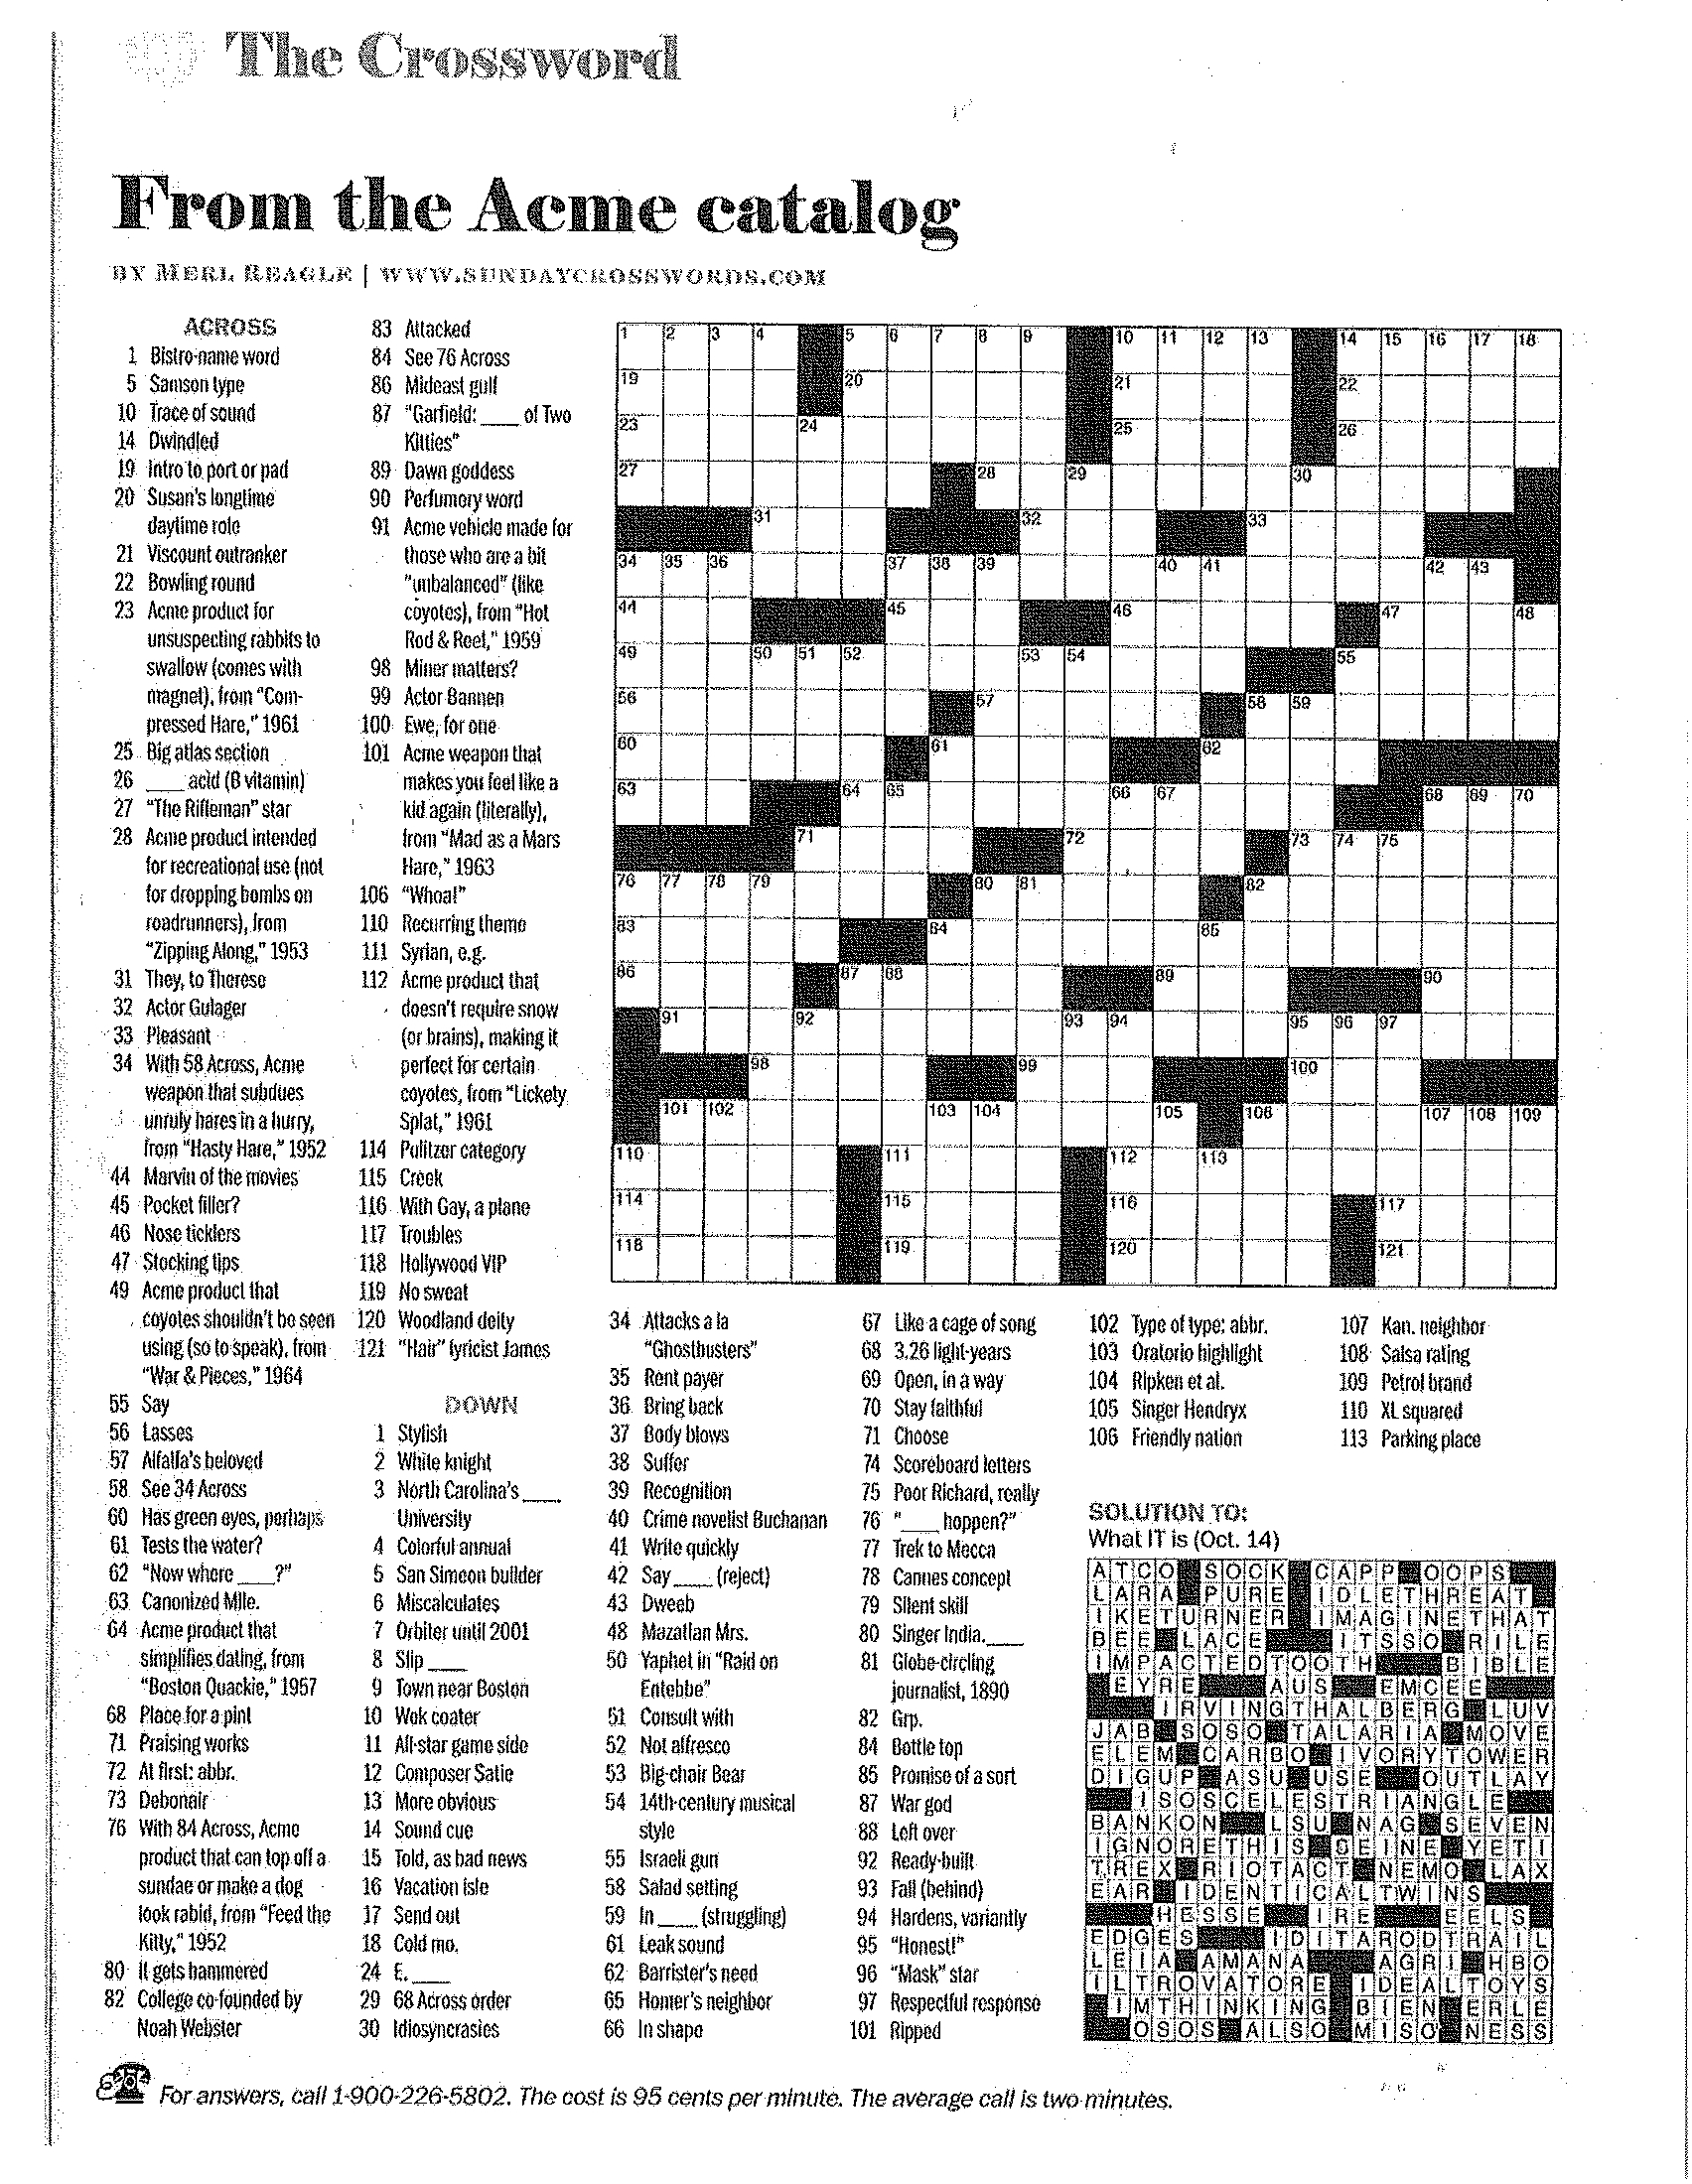 Printable Crossword Puzzles Merl Reagle   Download Them Or Print - Printable Crossword Puzzles Merl Reagle